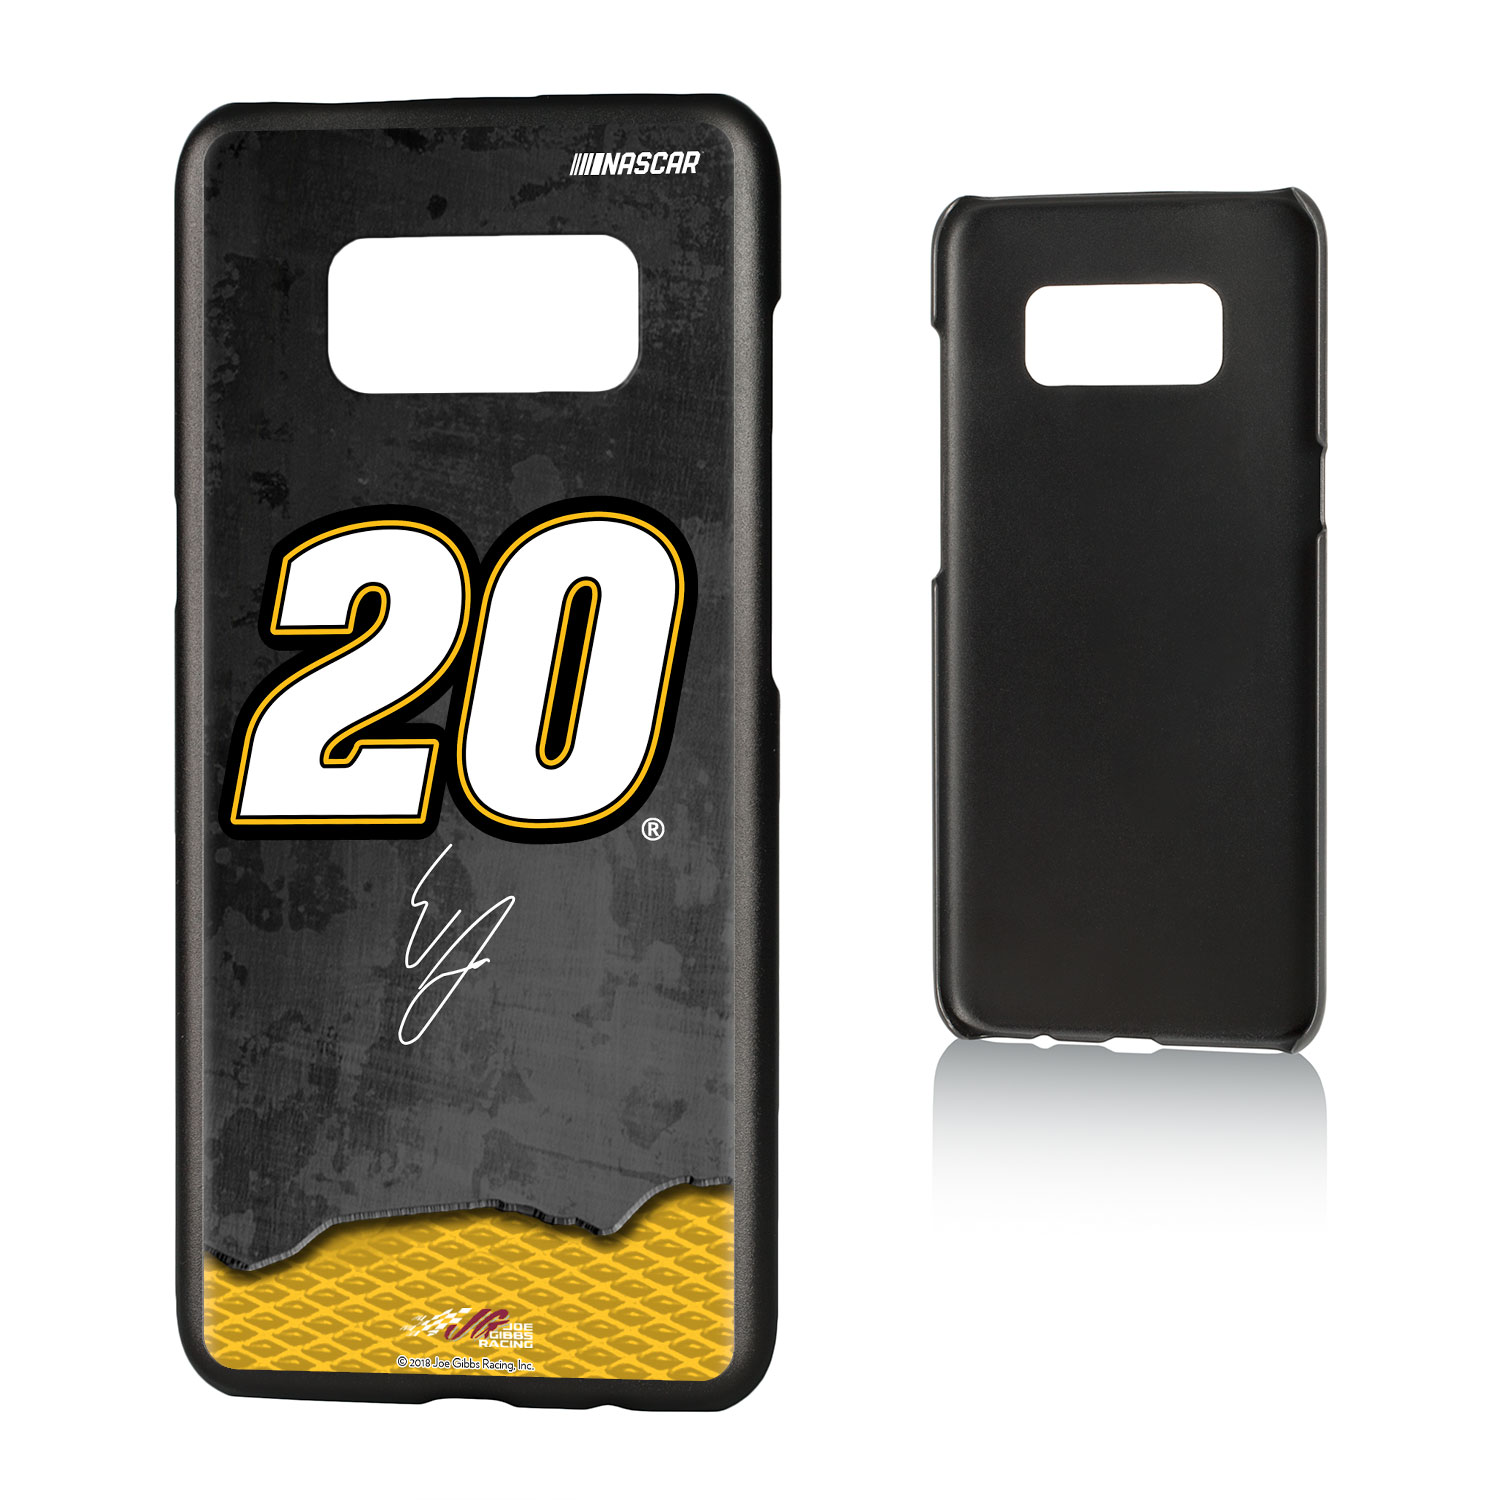 Erik Jones Fast Slim Case for Galaxy S8